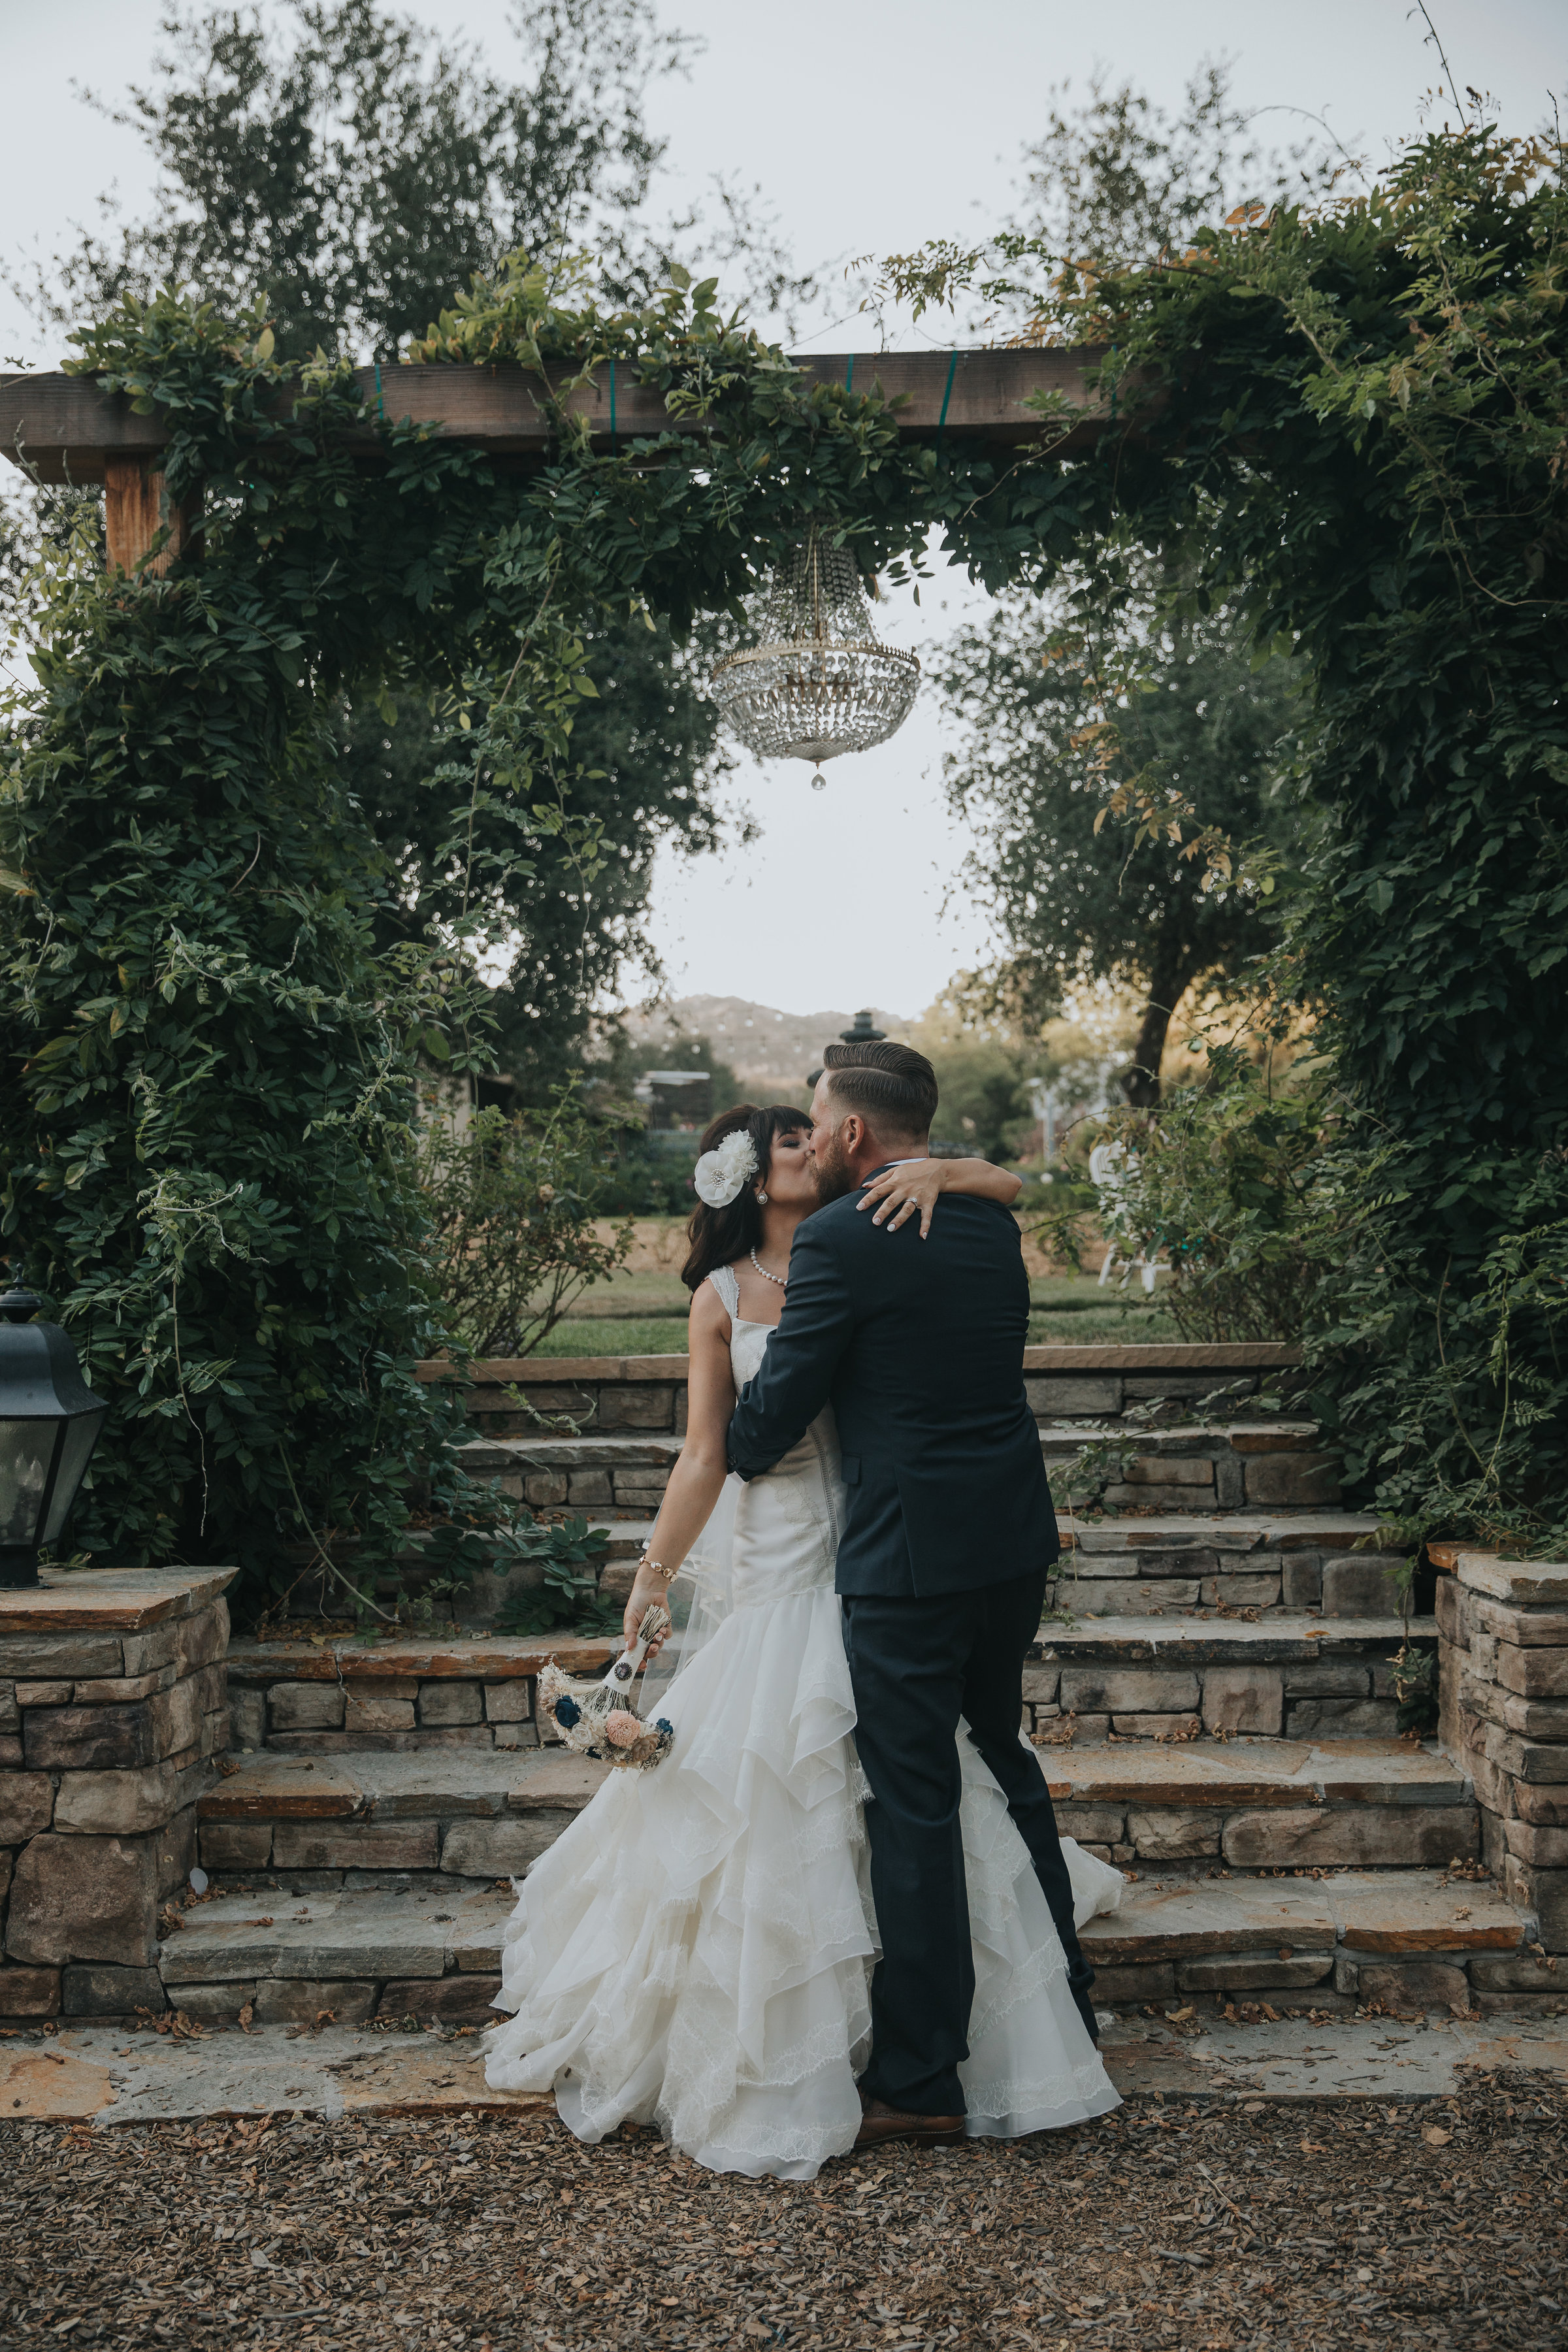 Bride and groom kissing under a wisteria arch at Chateau Adare in the Temecula Valley.